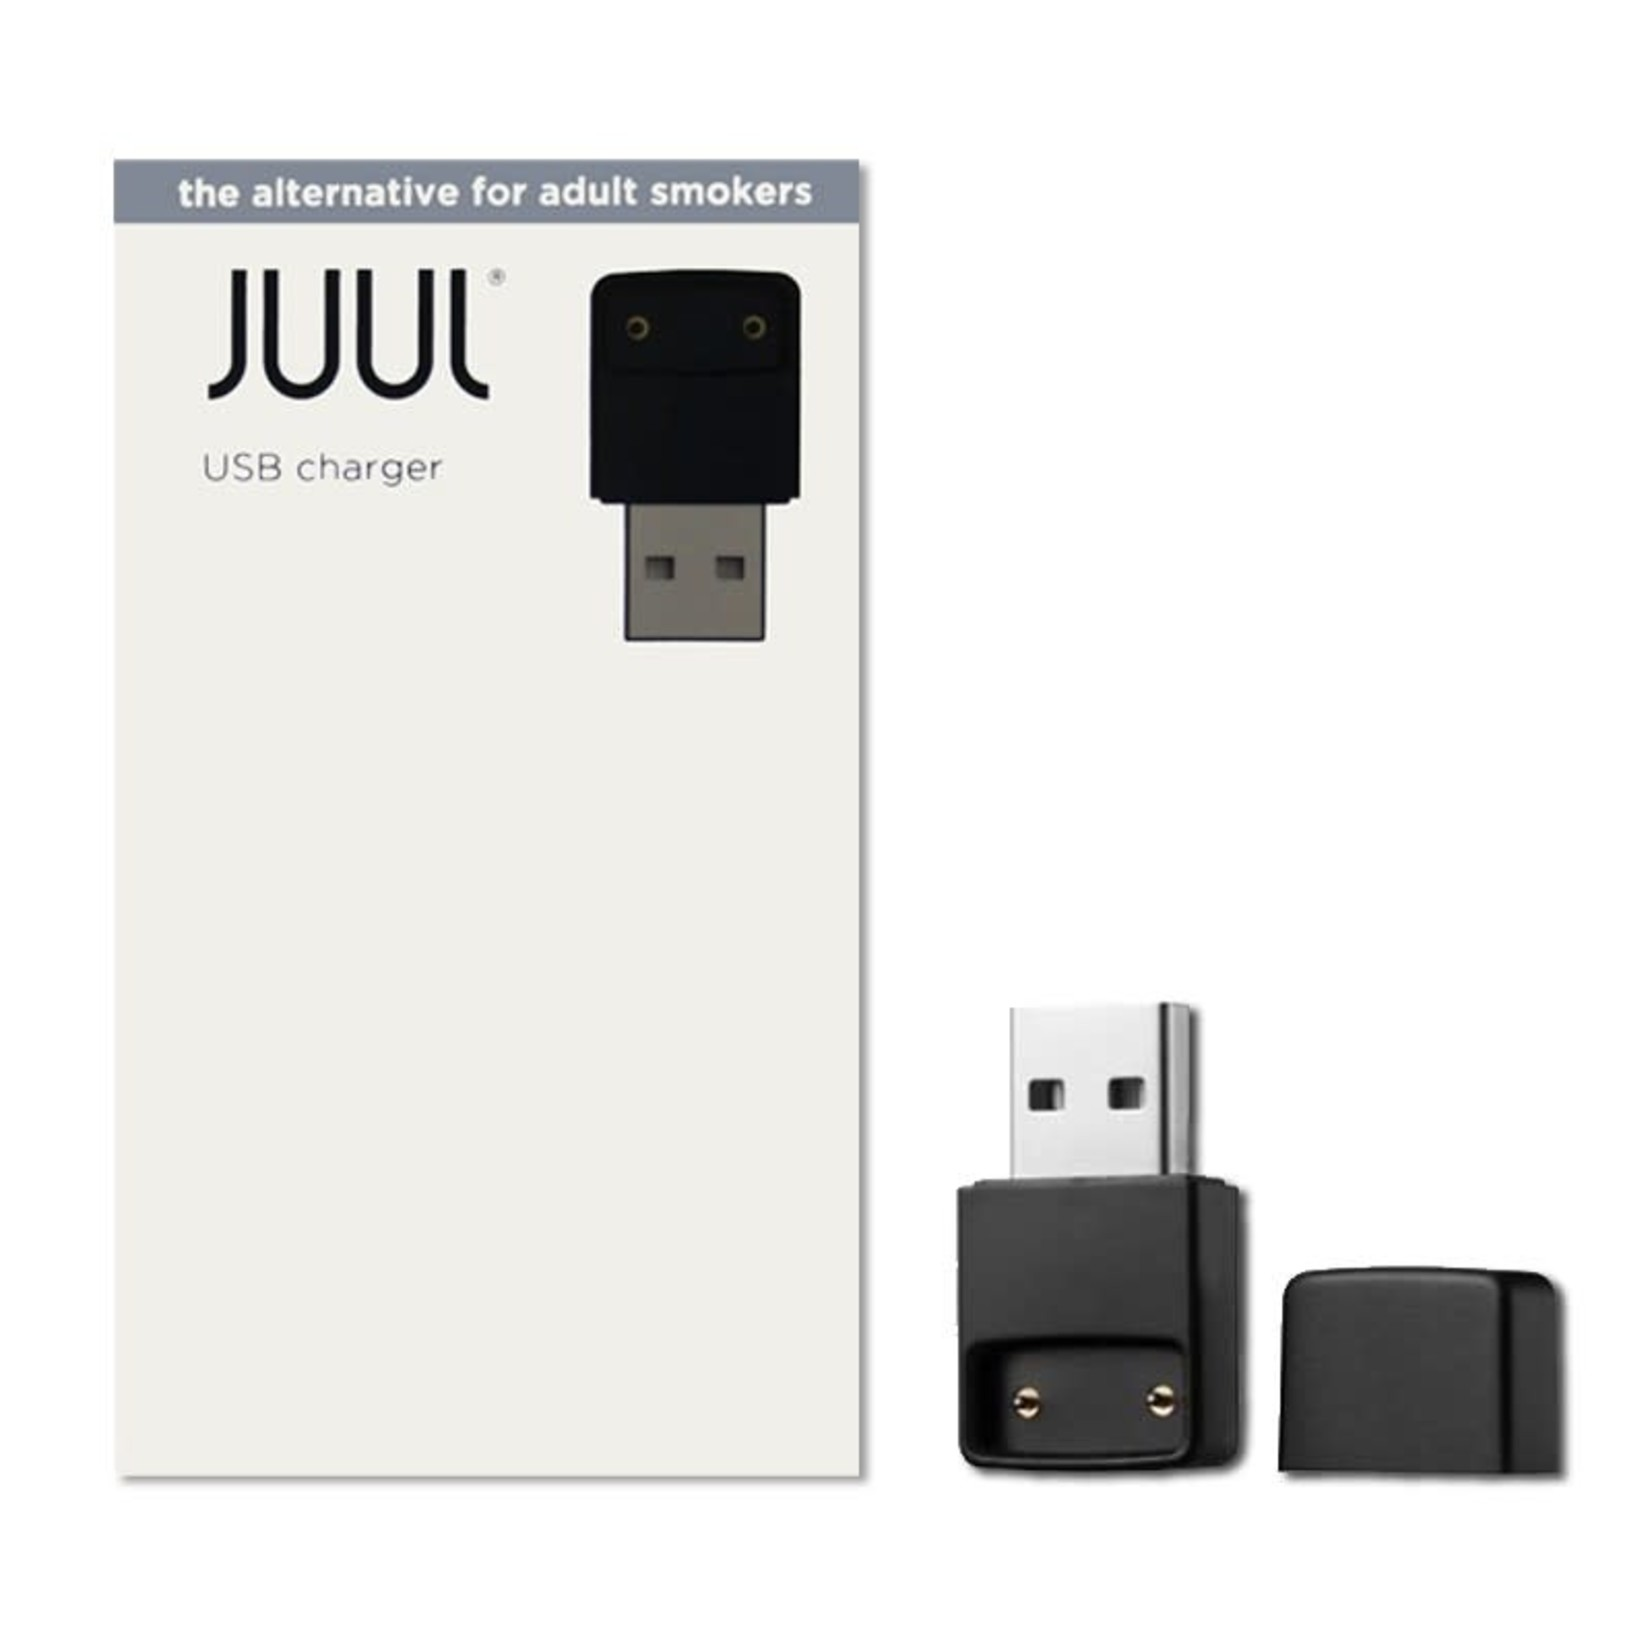 JUUL USB CHARGER JUUL